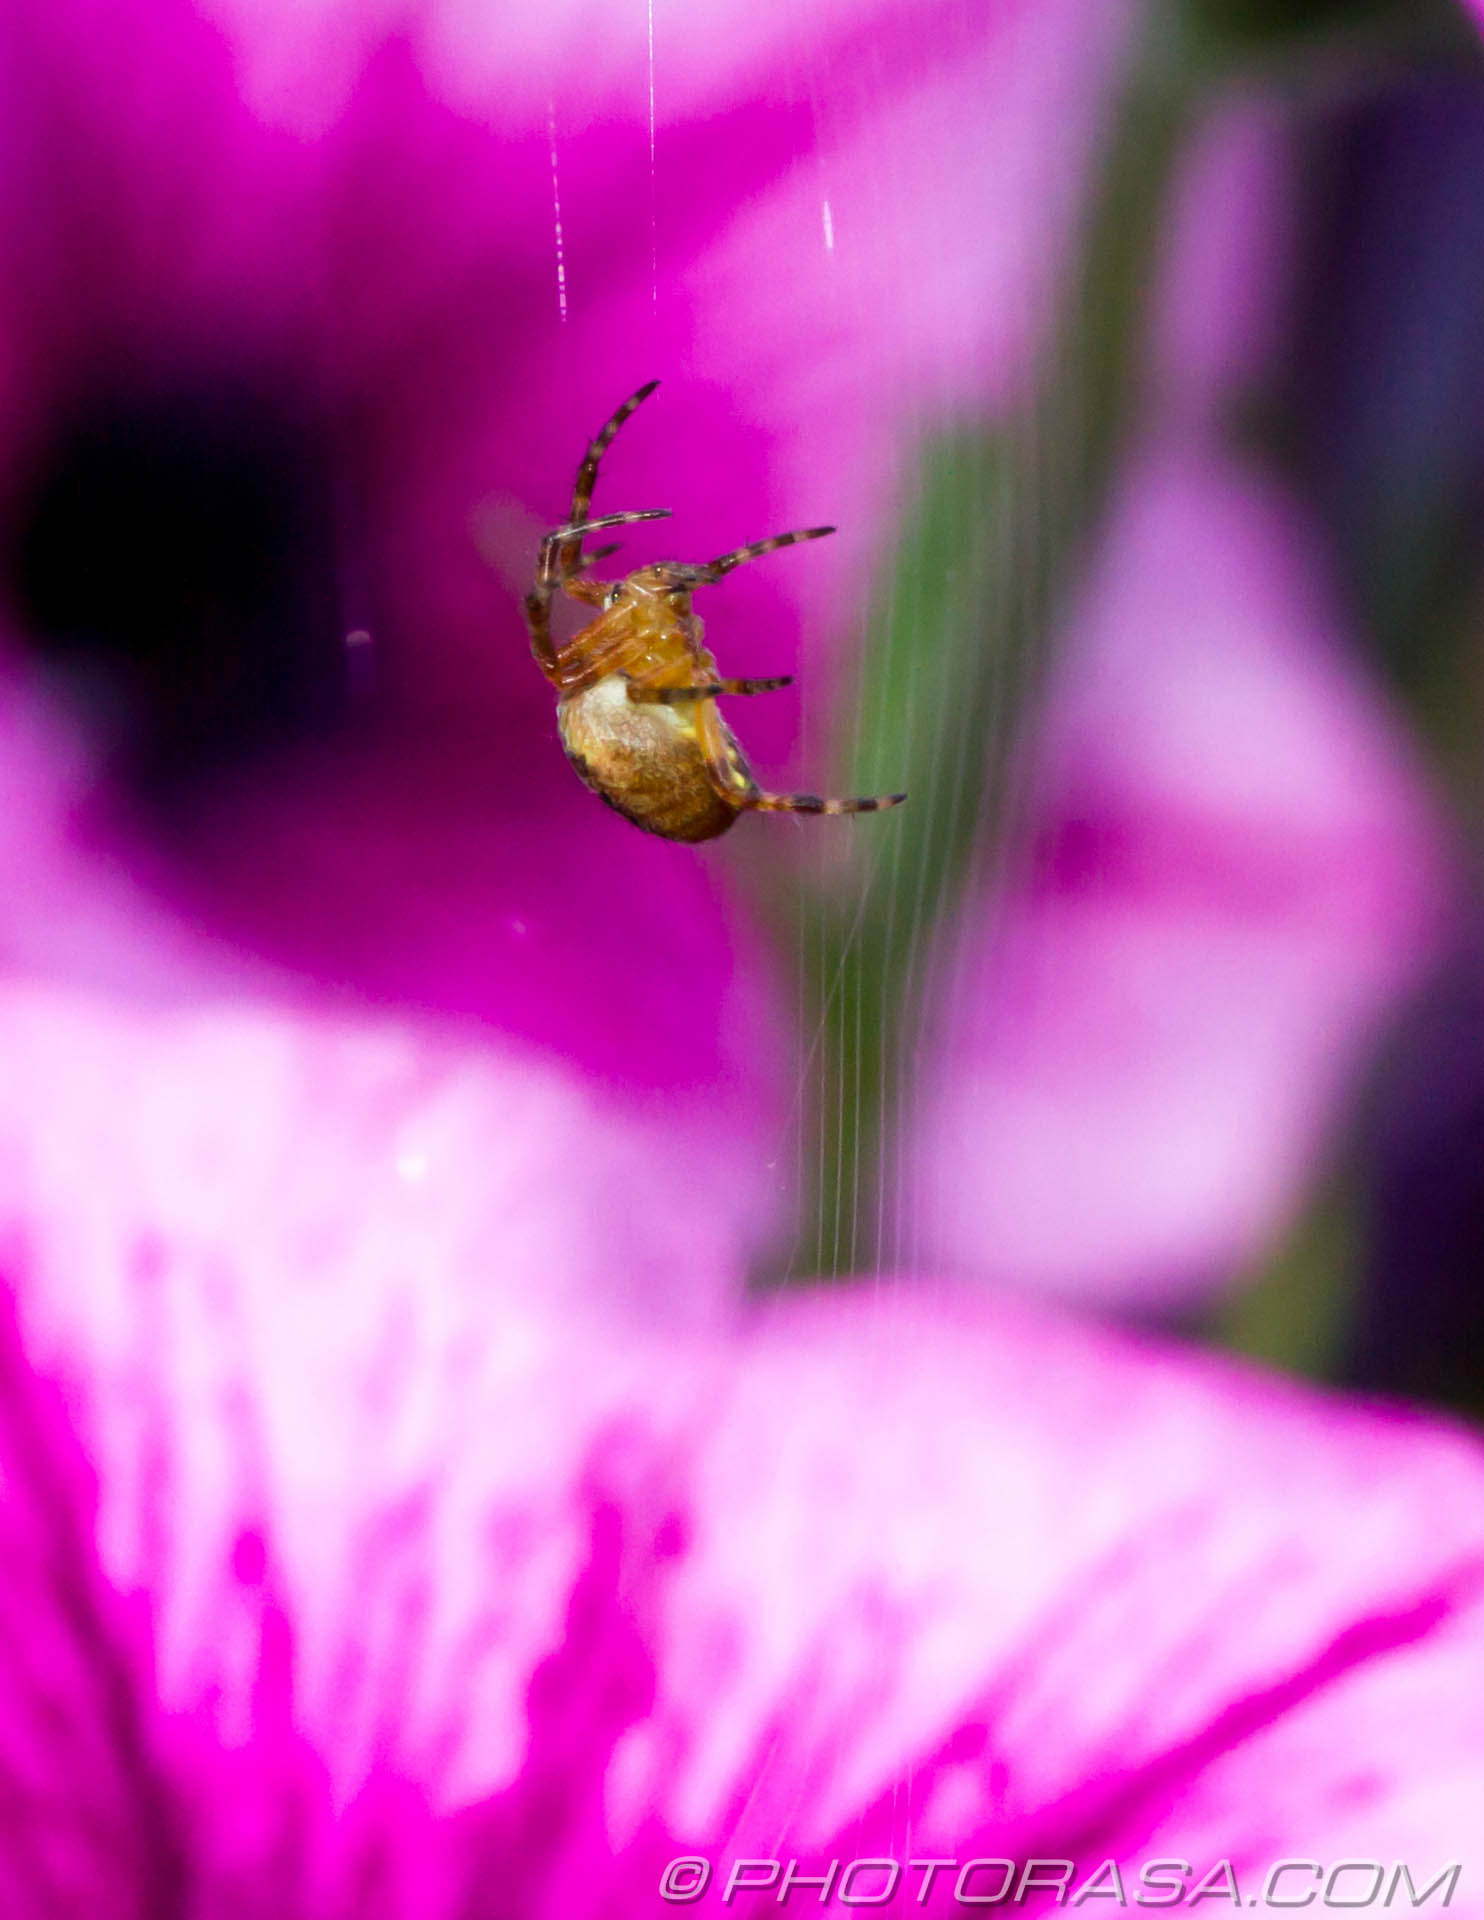 http://photorasa.com/spider-petunias/spider-making-web-in-petunias/